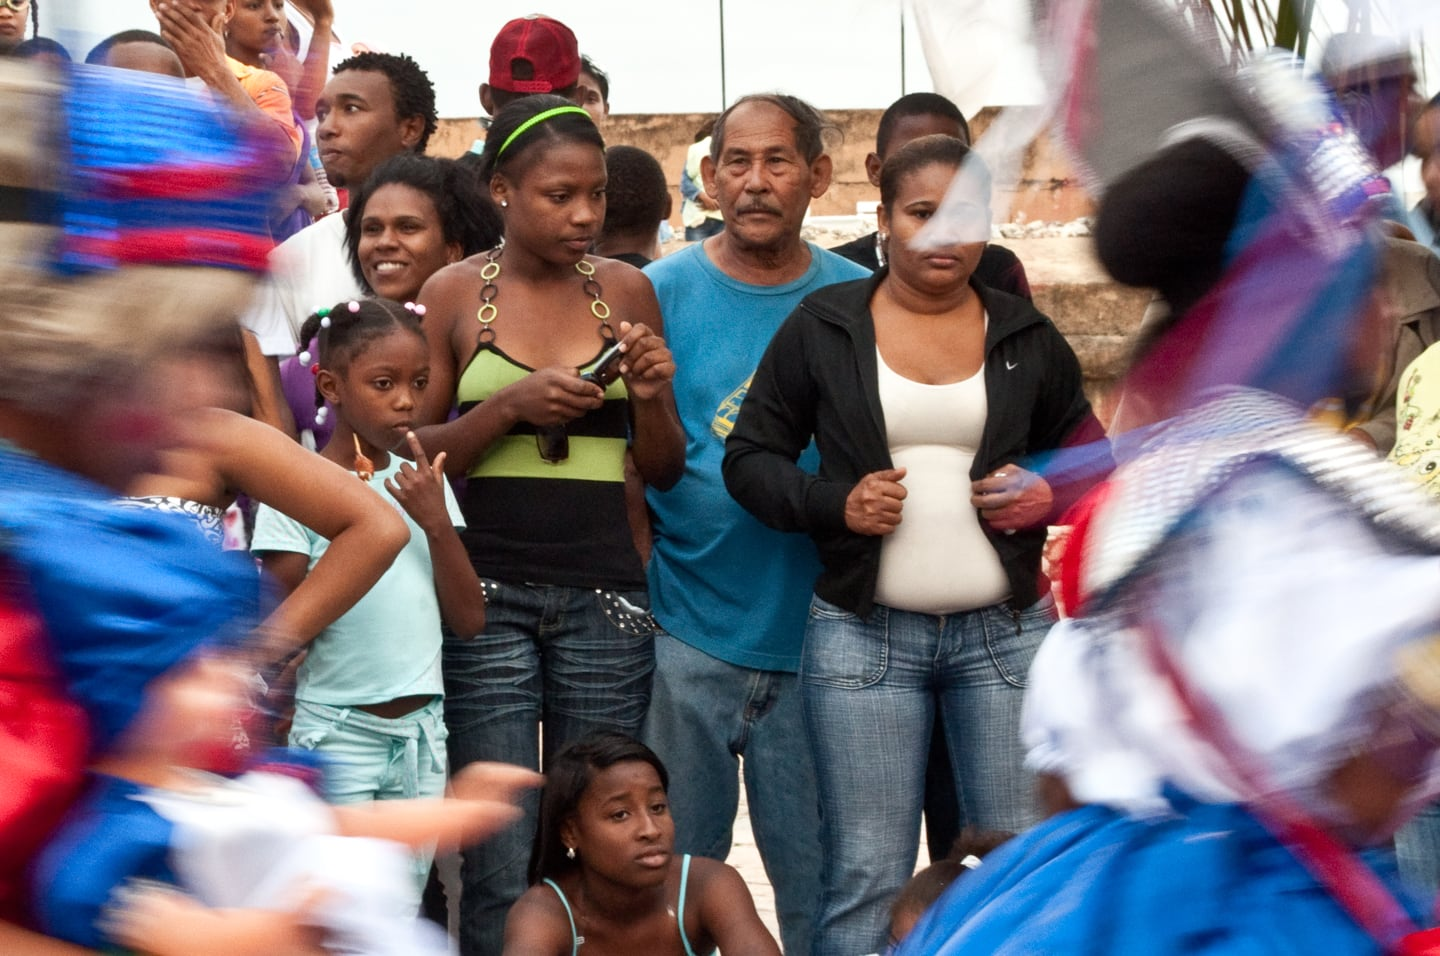 dominican family watching parade